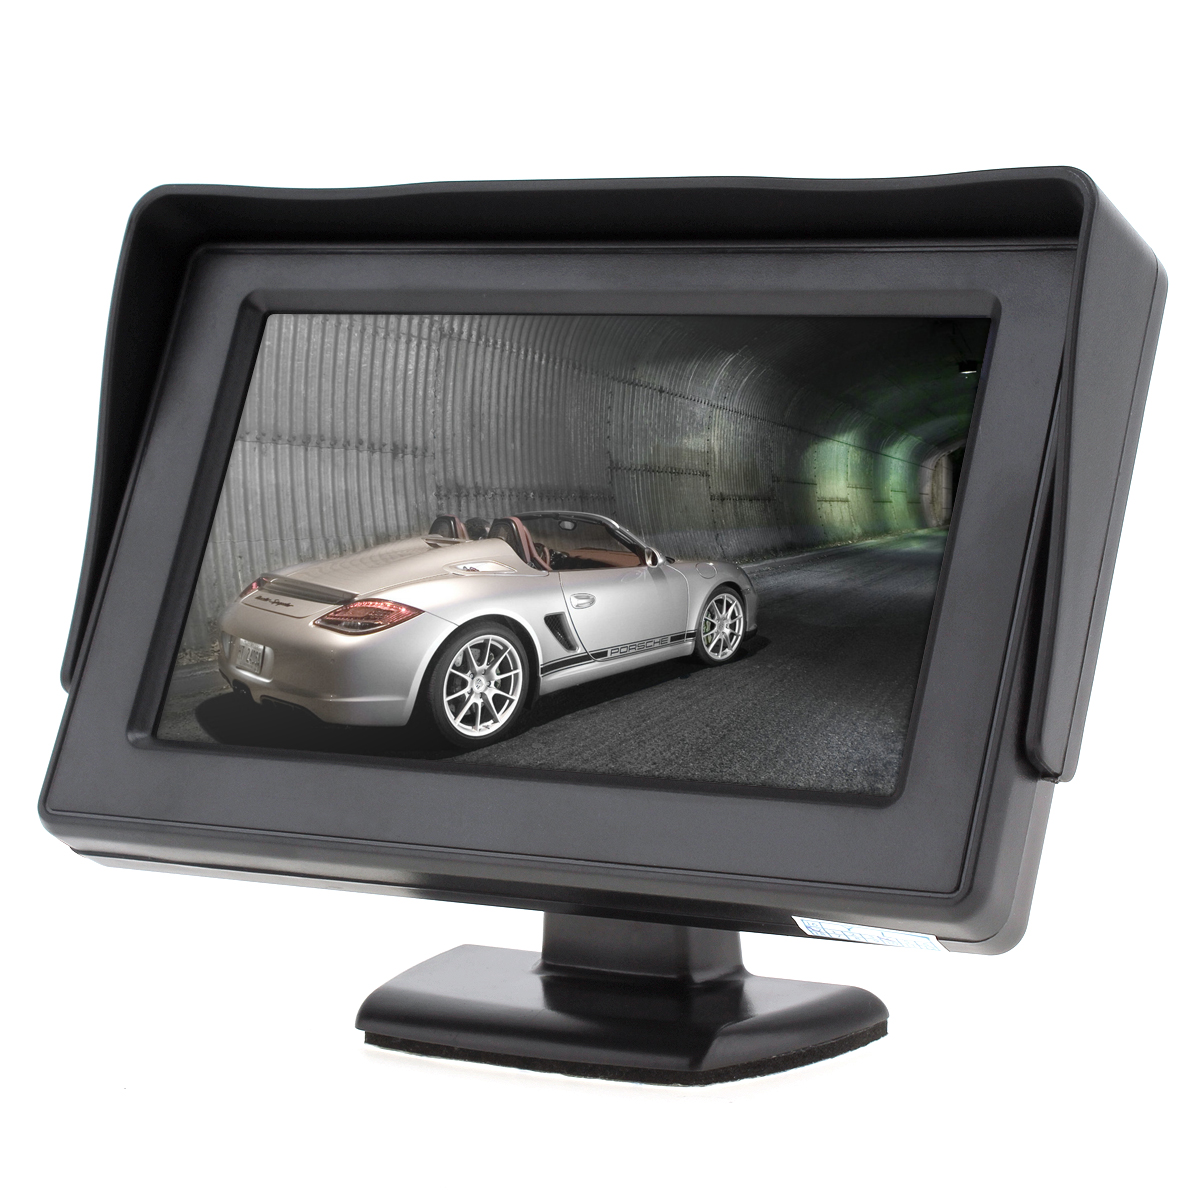 4.3 Inch HD 480 x 234 Resolution 2-Channel Video Input TFT LCD Car Monitor for Rear View Camera / DVD / VCD